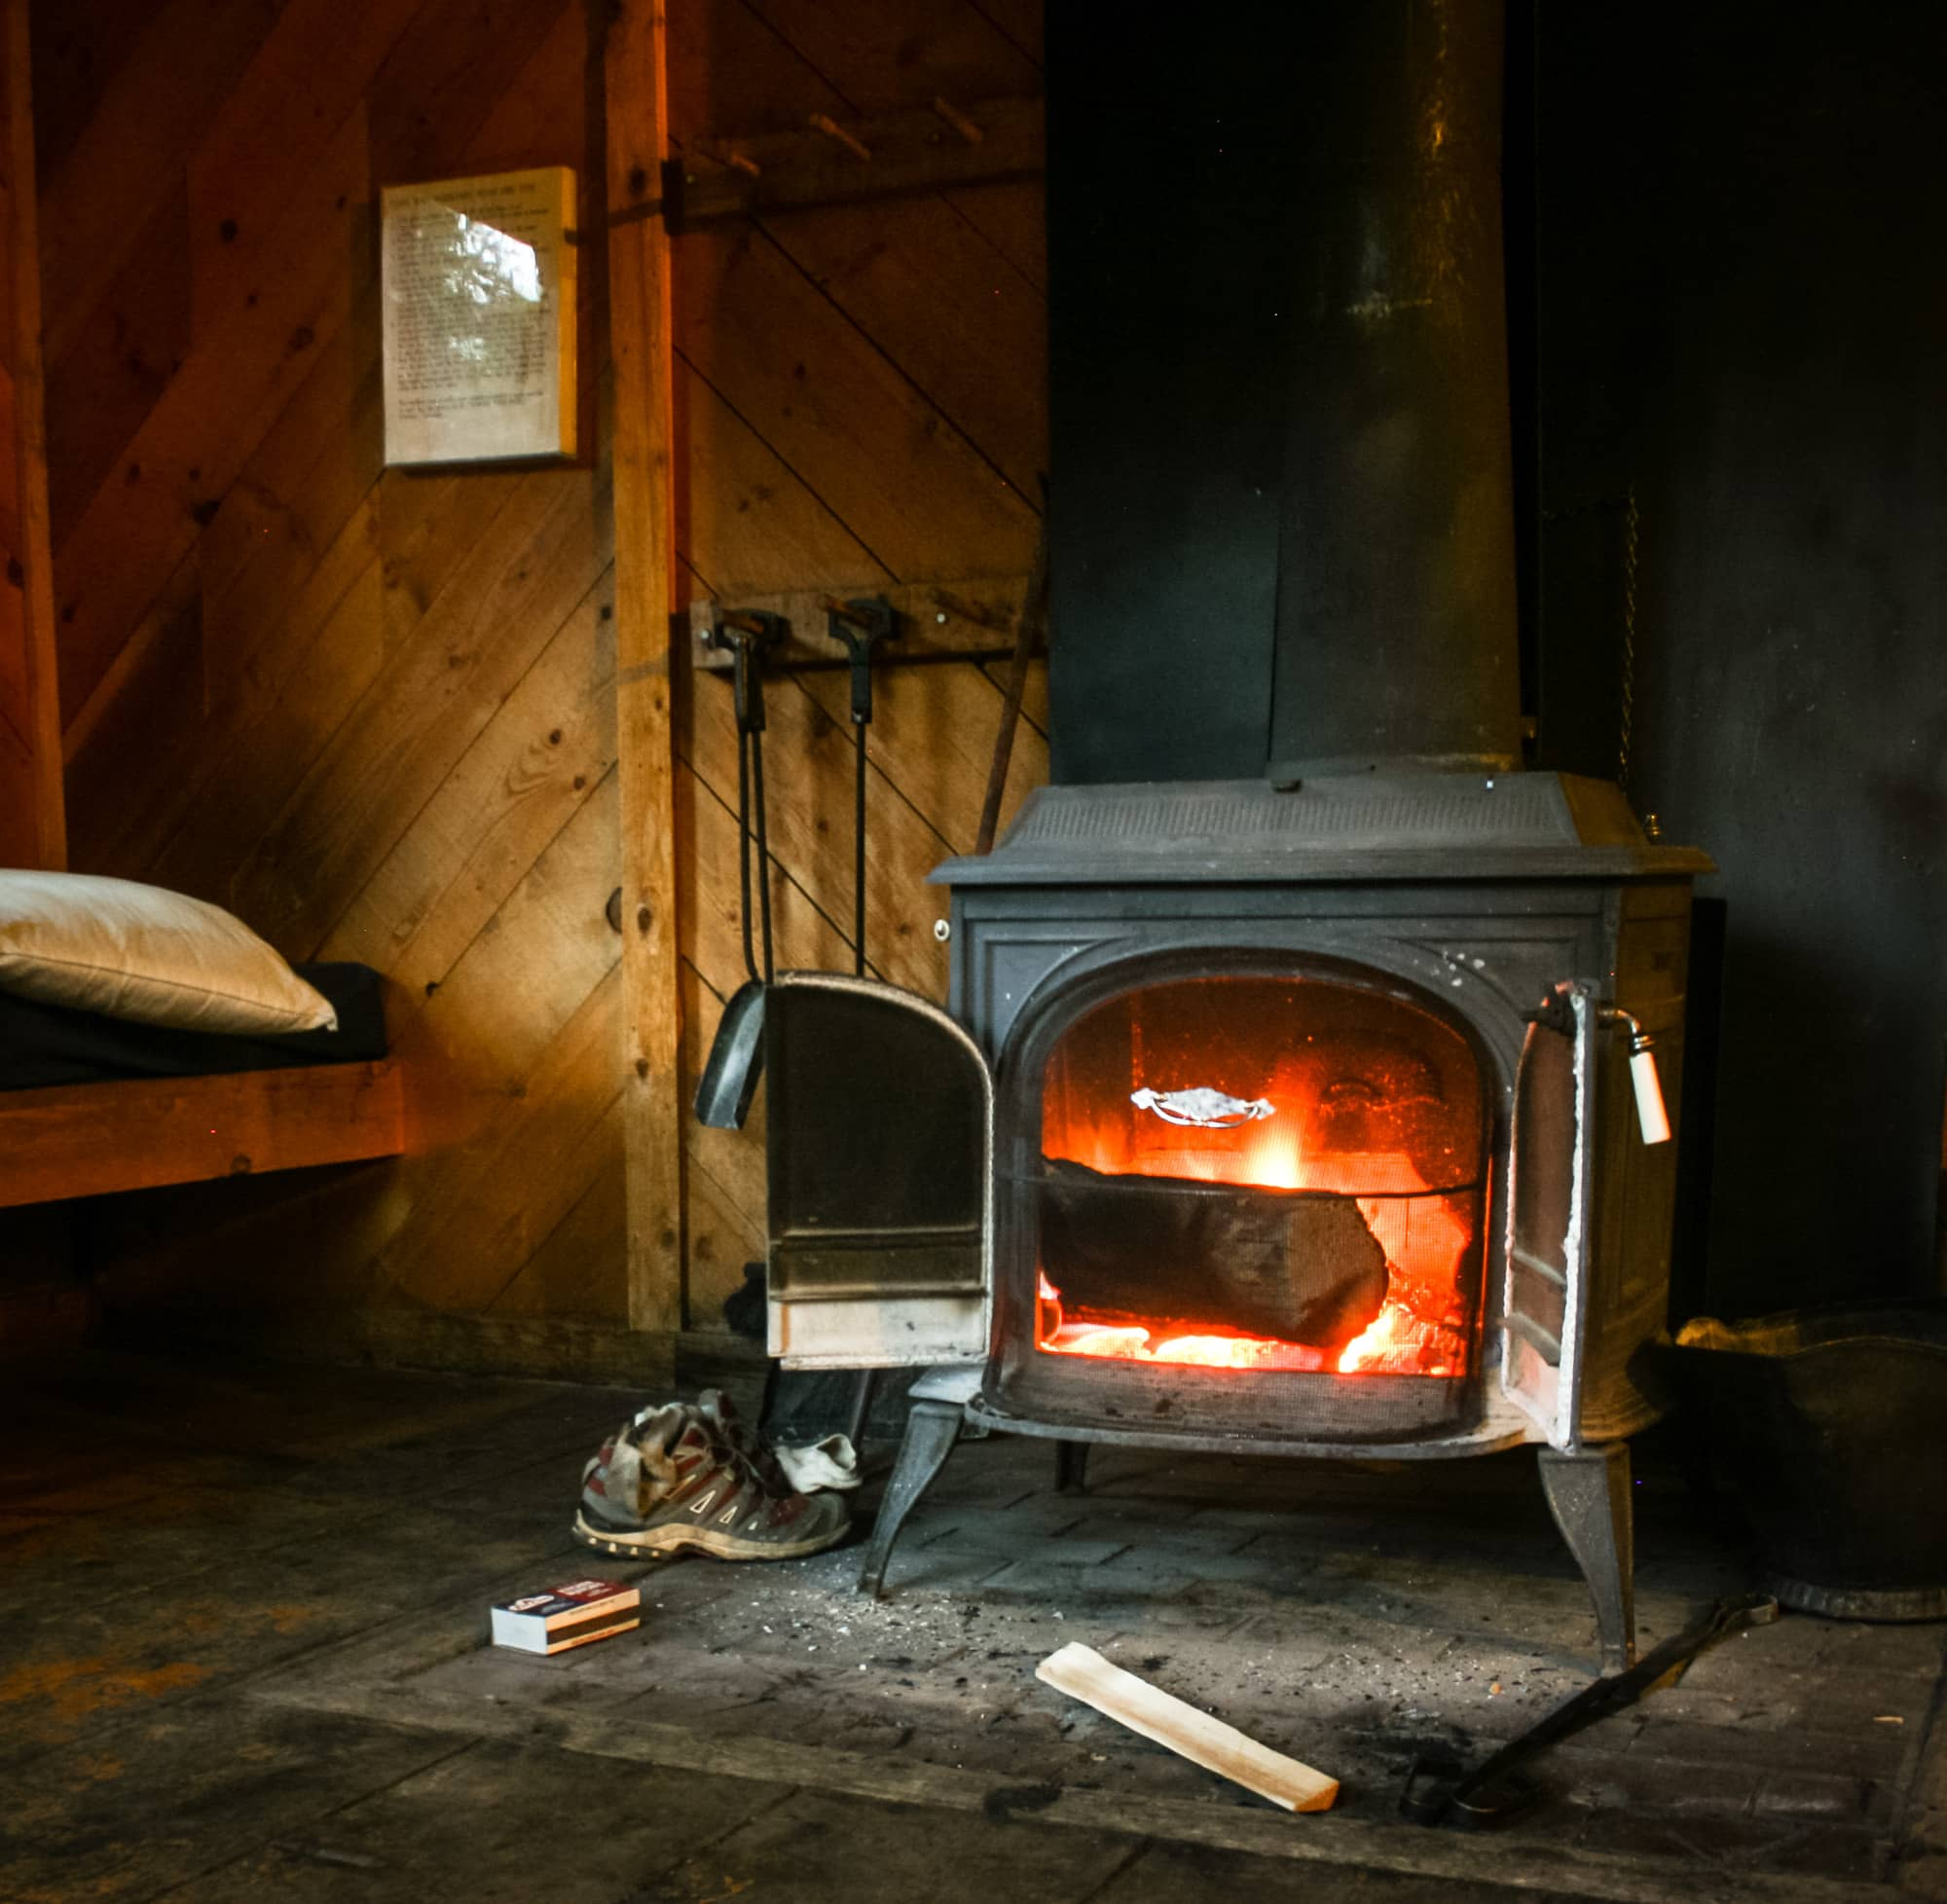 Reasons to take a backcountry hut trip - #8 - wood fires are the best